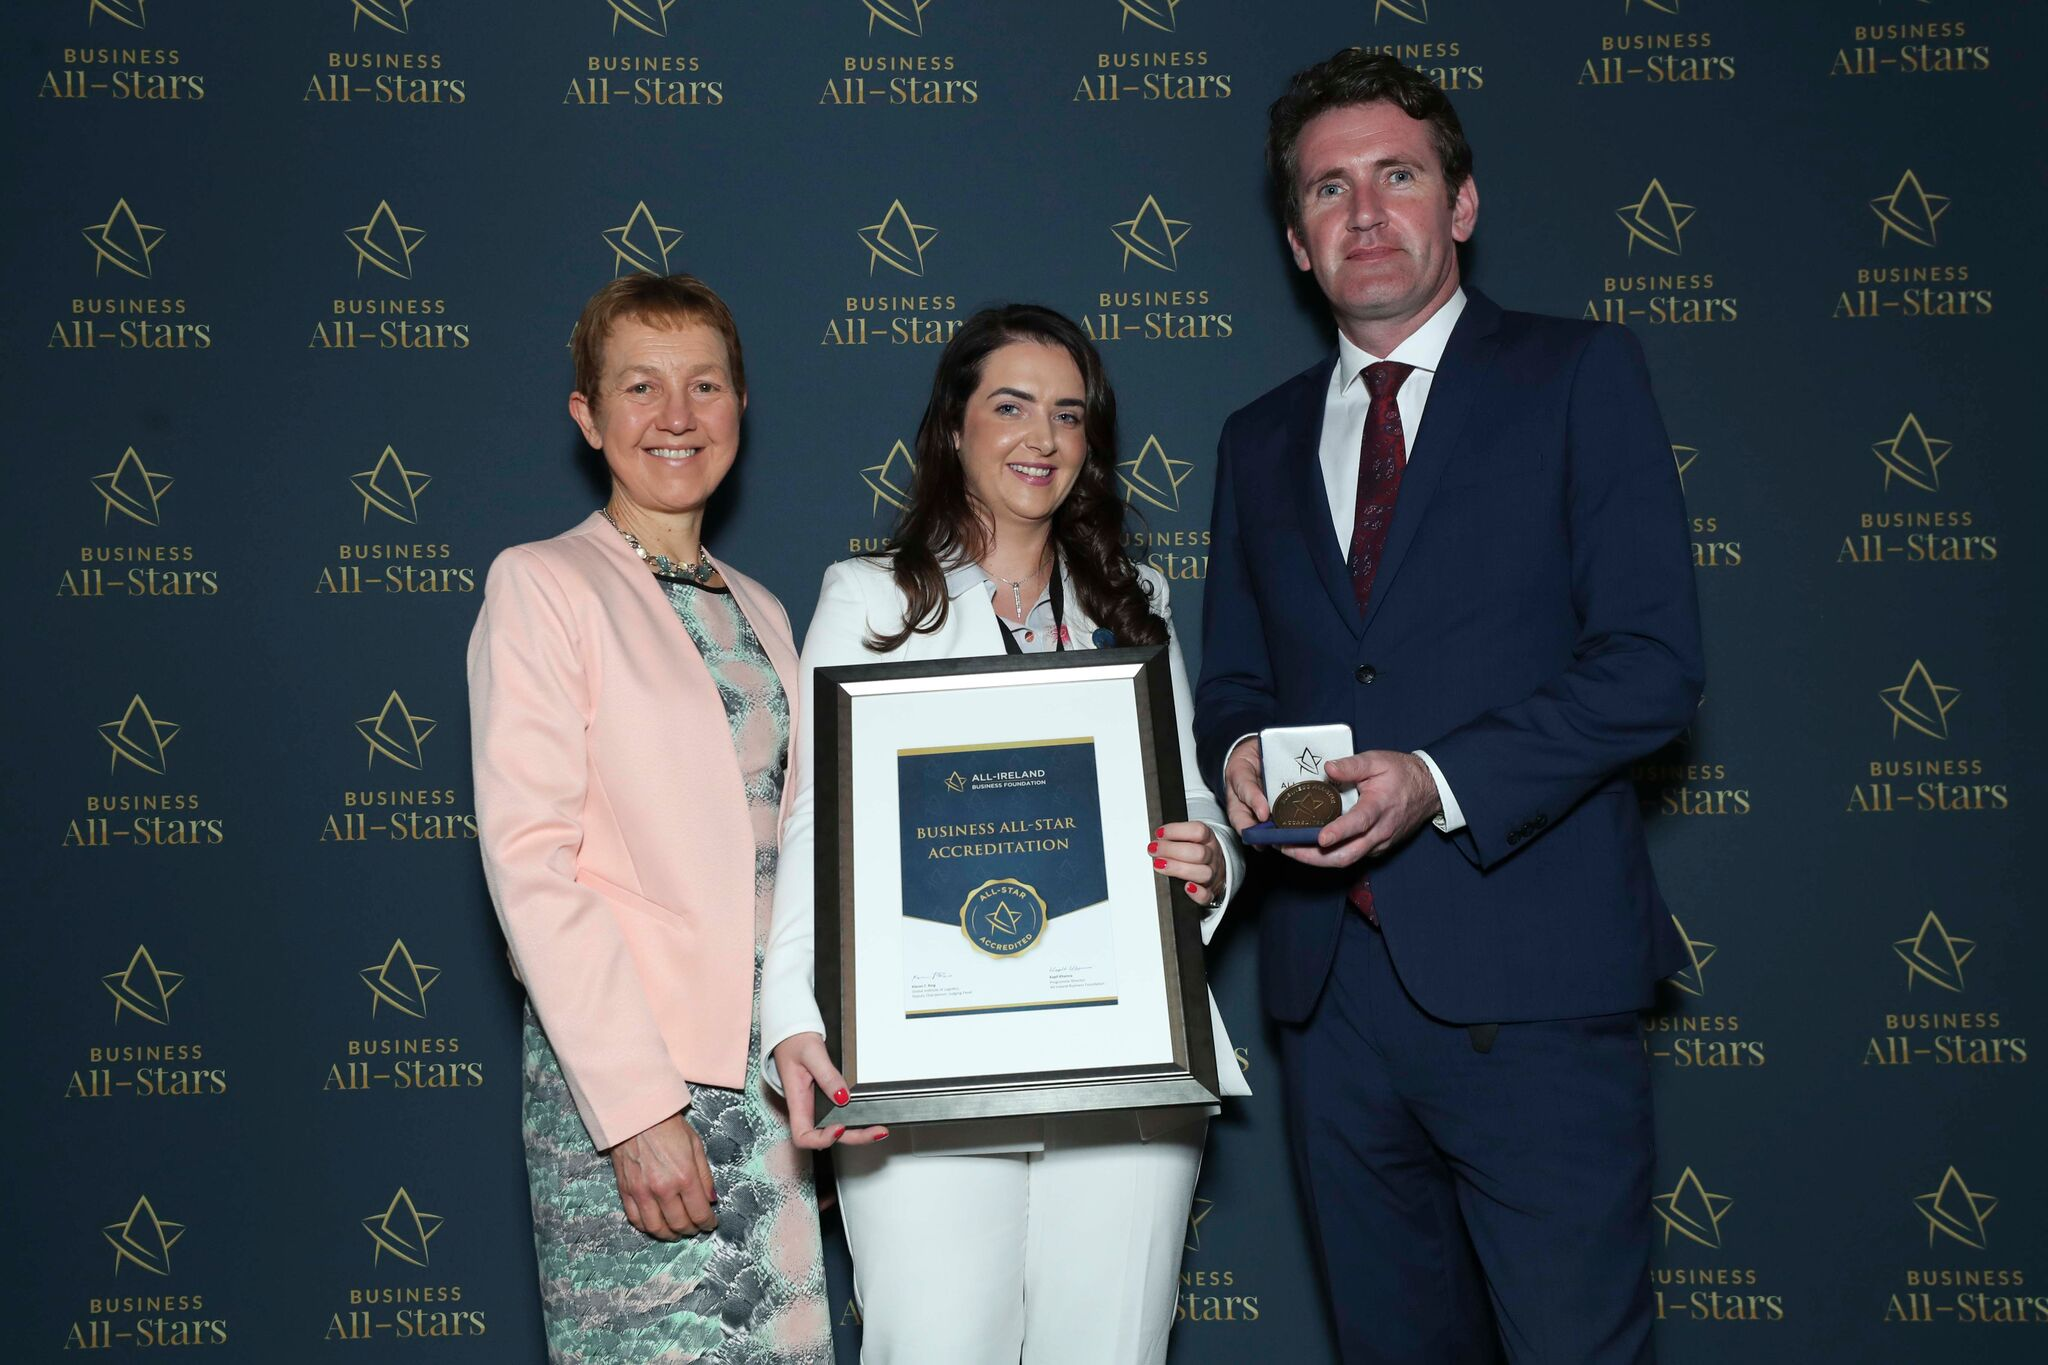 Charlene McMahon - Touch and Glow Skin and Laser receiving Business All-Star Accreditation at Croke Park from Dr Briga Hynes, Kemmy Business School, University of Limerick and Senator Aodhán Ó Ríordáin, Spokesperson on Education and Skills, Gaeilge and the Gaeltacht.